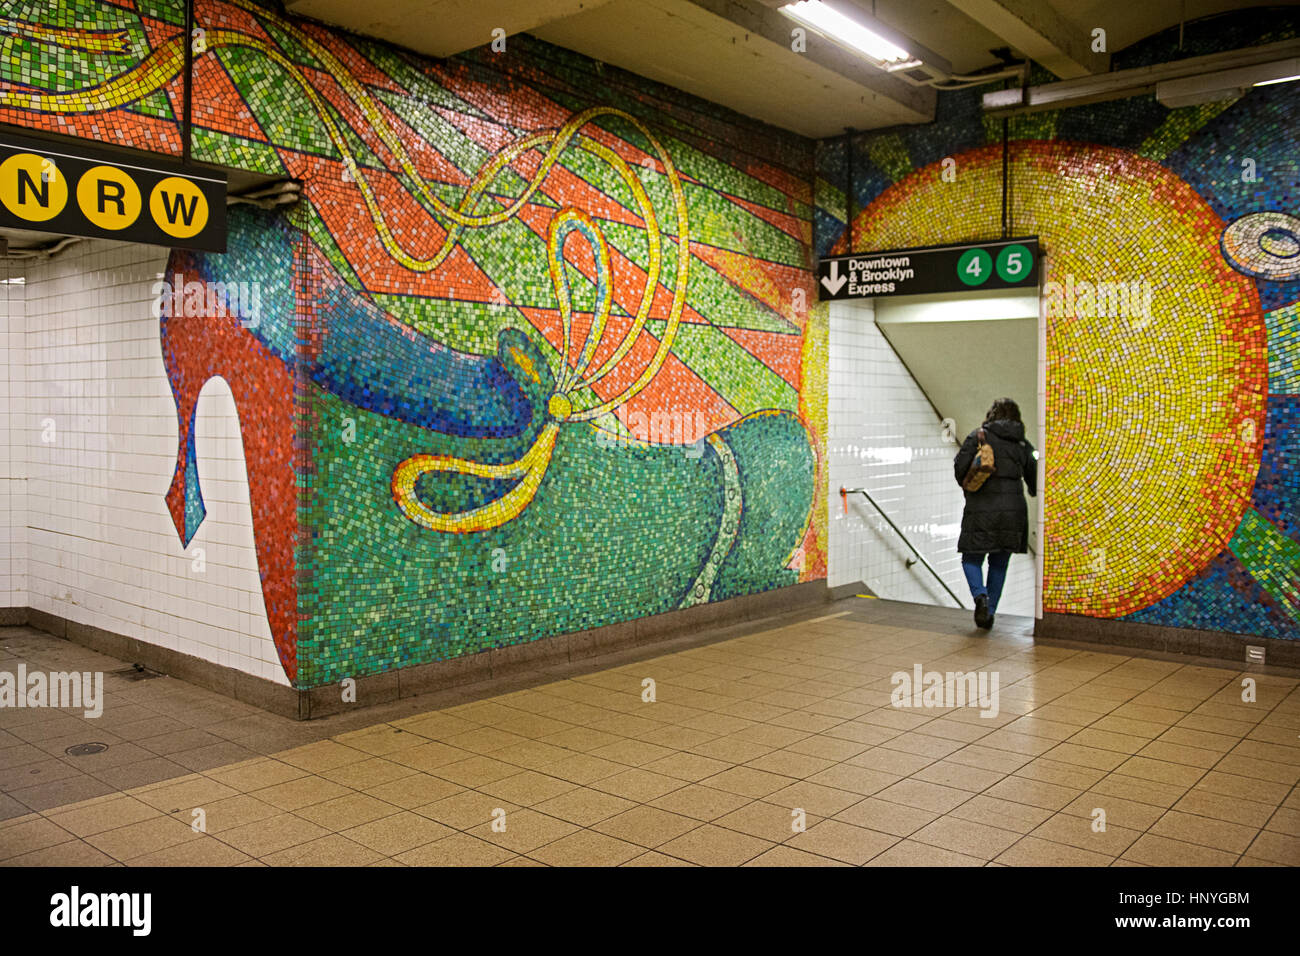 Subway Mosaic Art At The 59th Street Station On Upper East Side Of Manhattan New York City